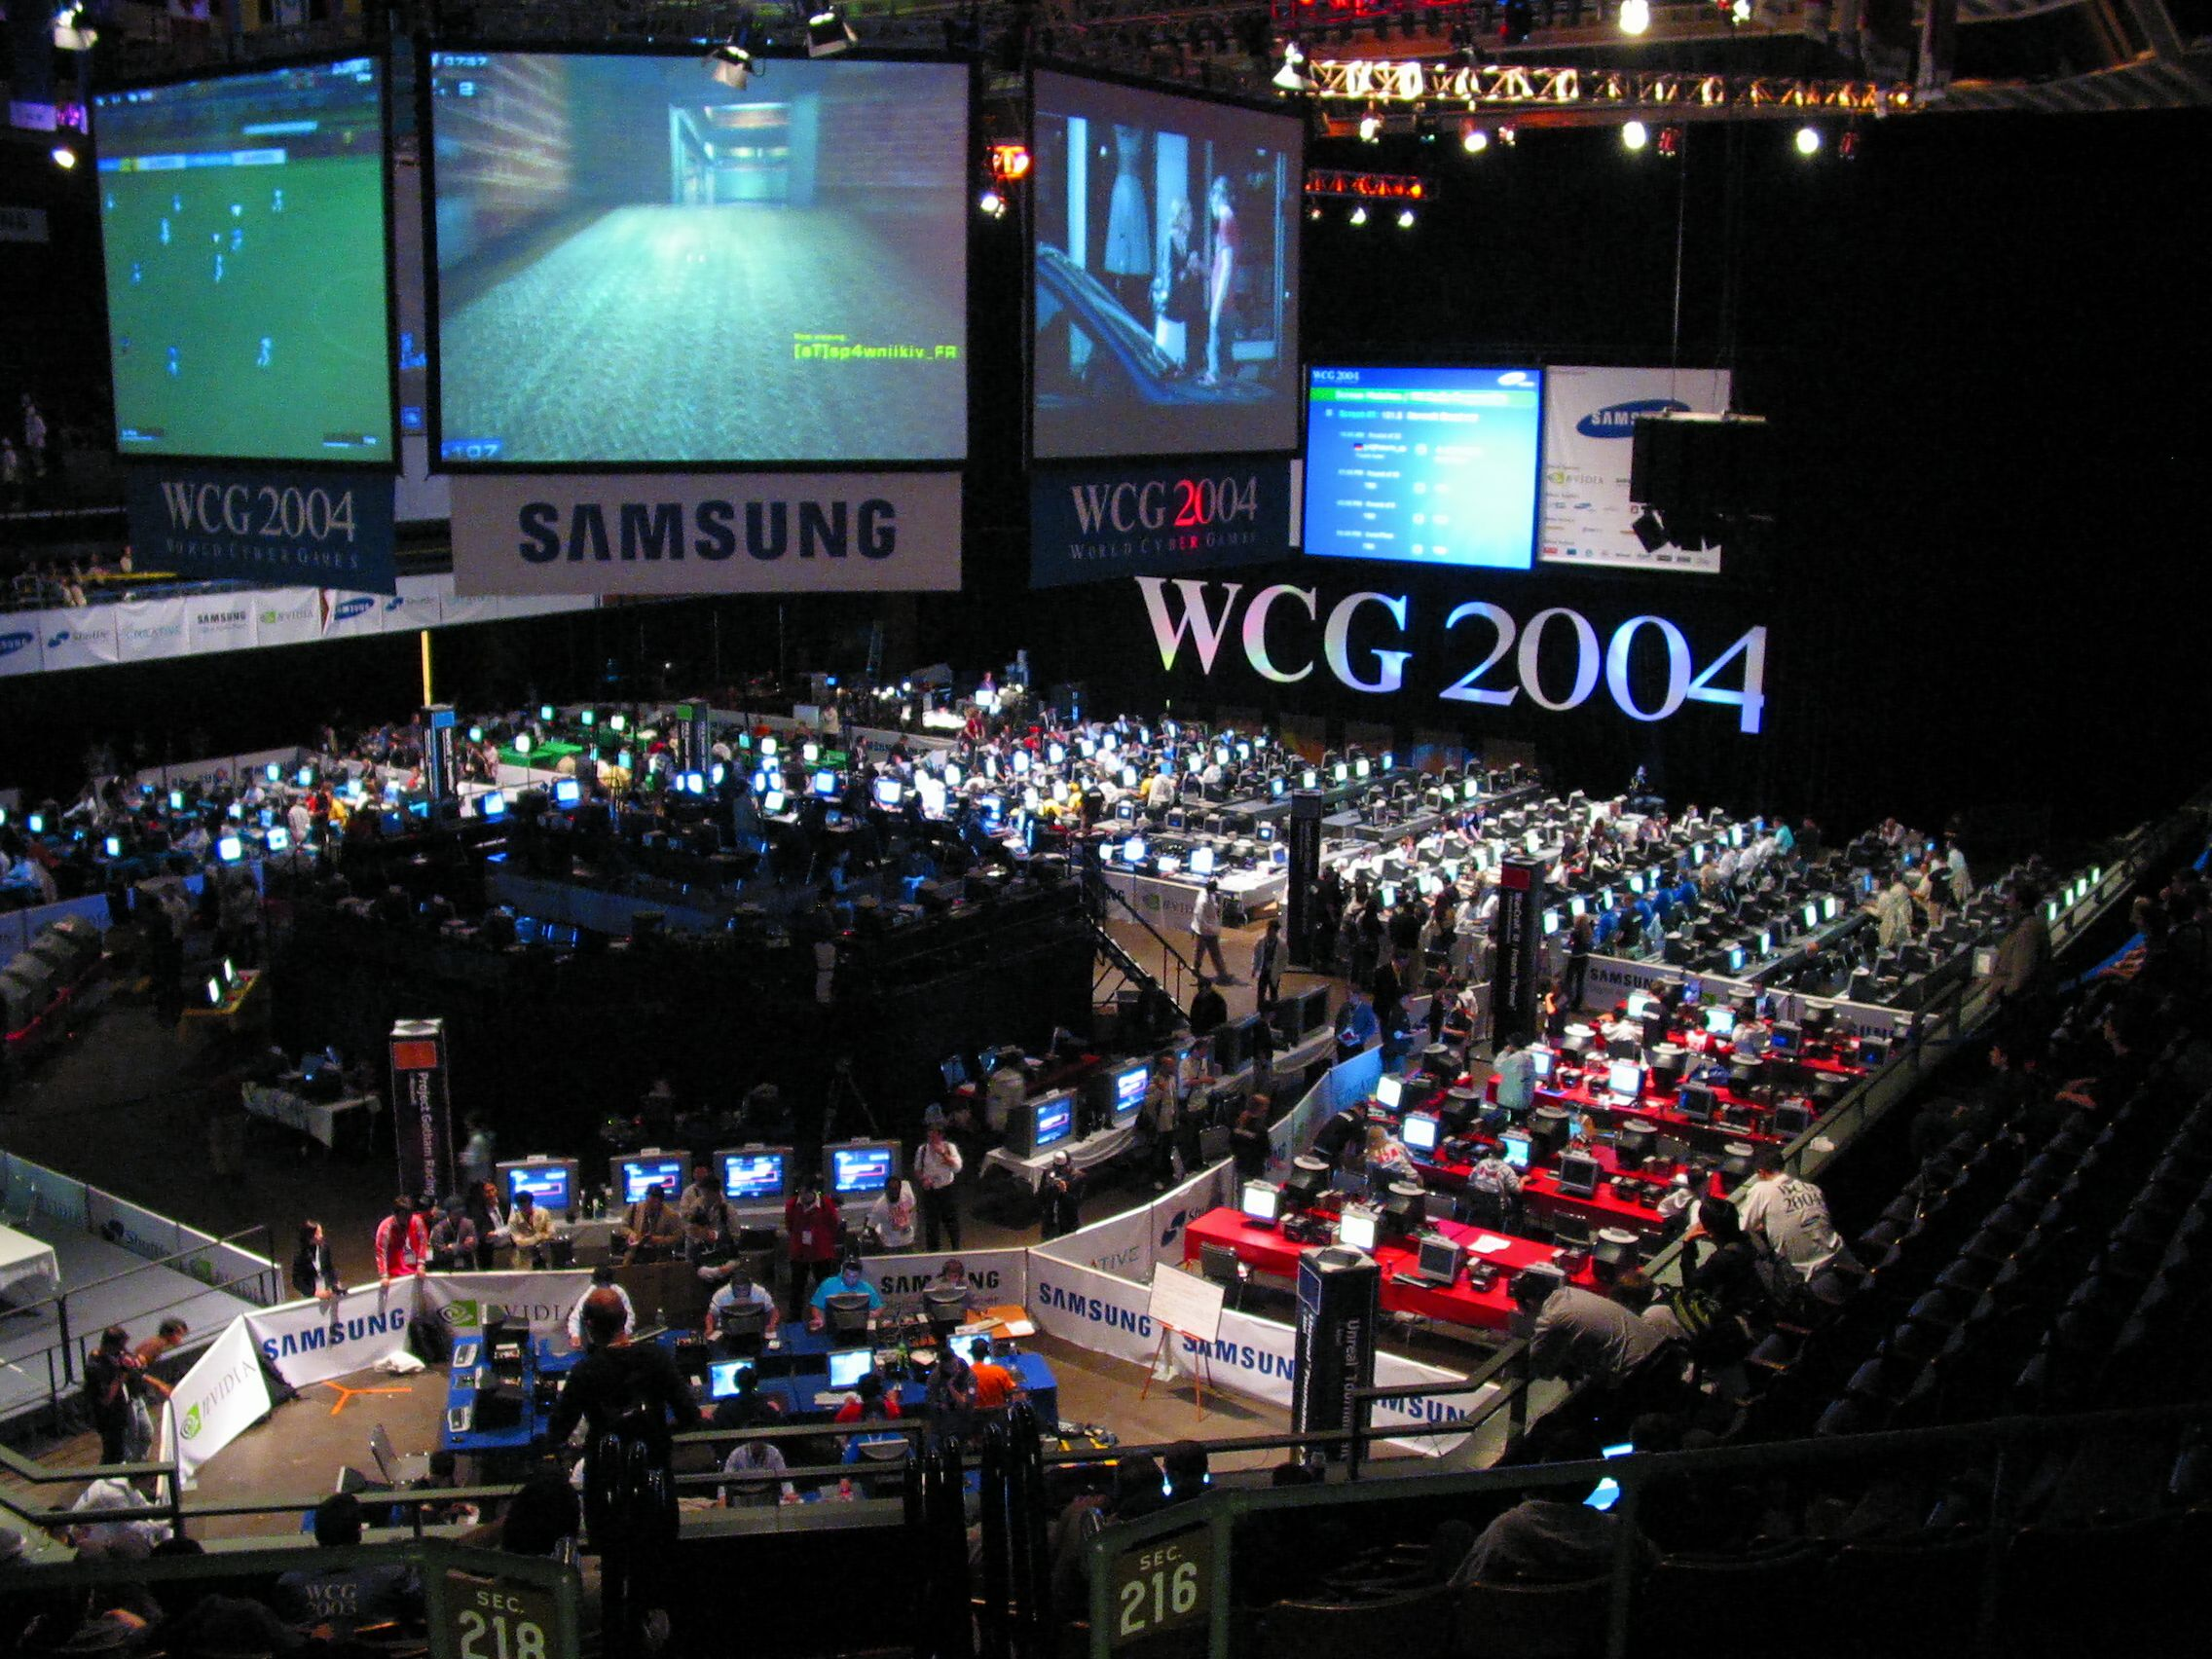 The World Cyber Games WCG Malaysia and Asian